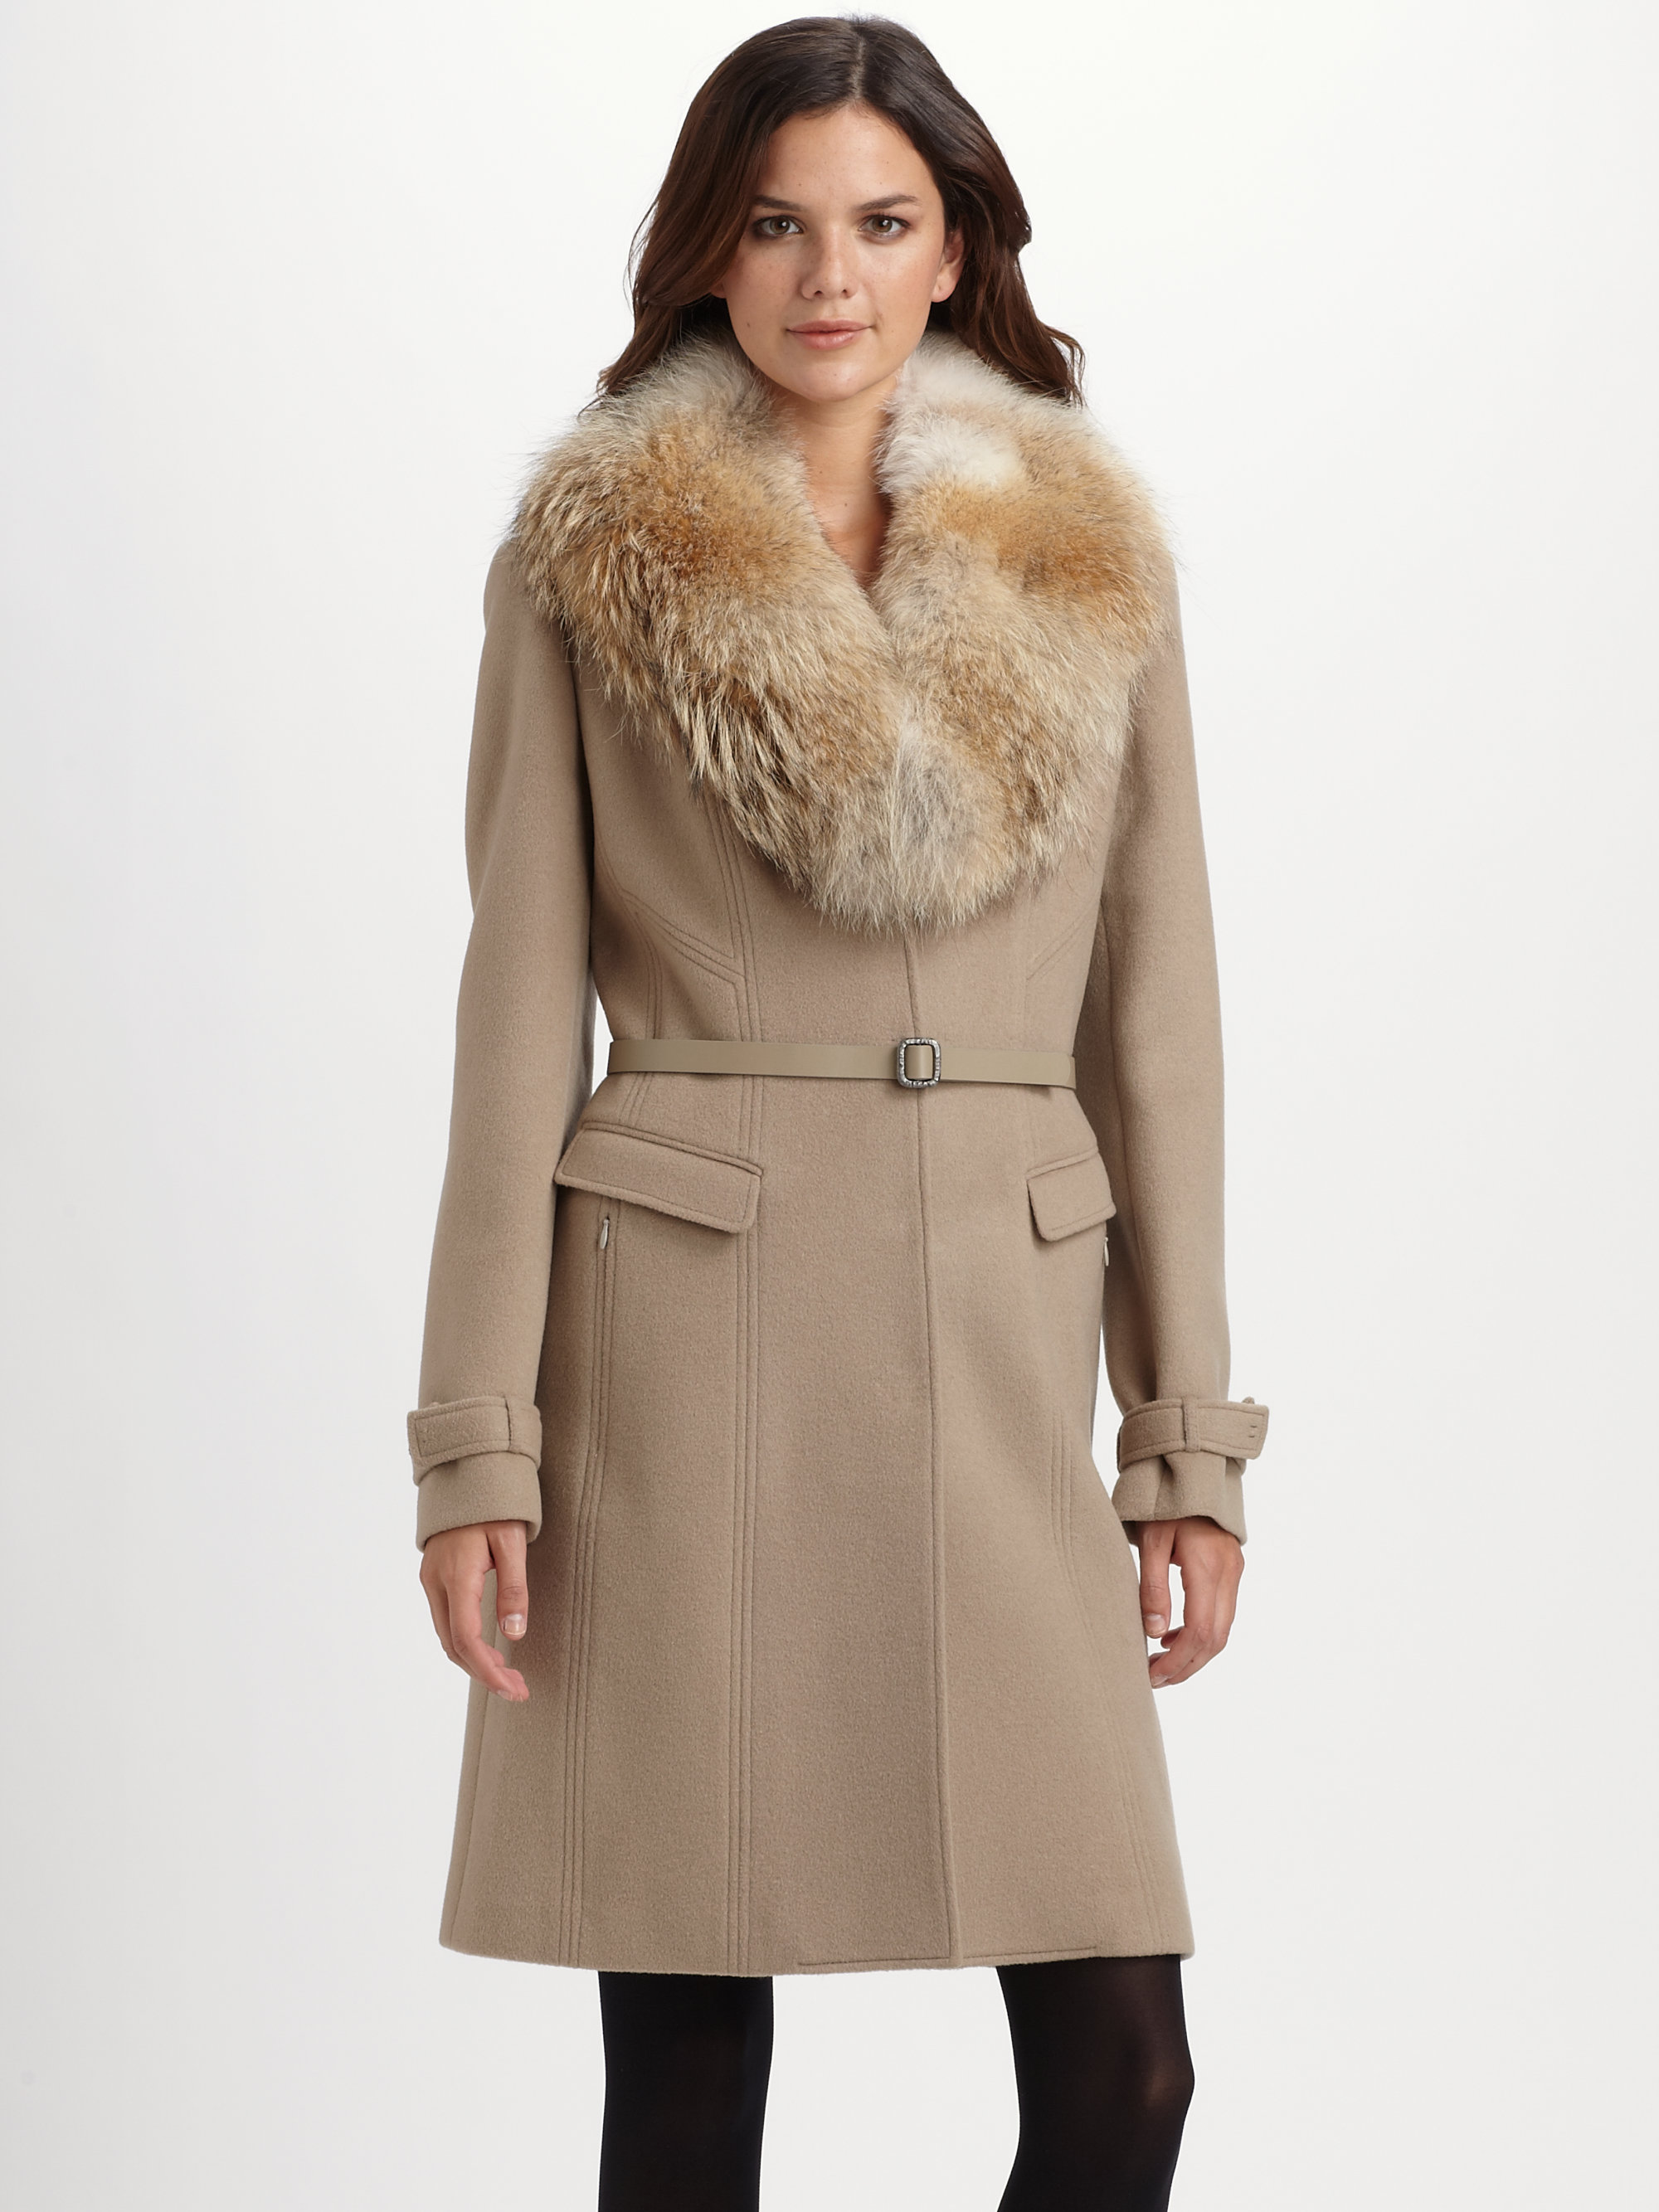 Elie tahari Fur-trimmed Wool Coat in Brown | Lyst